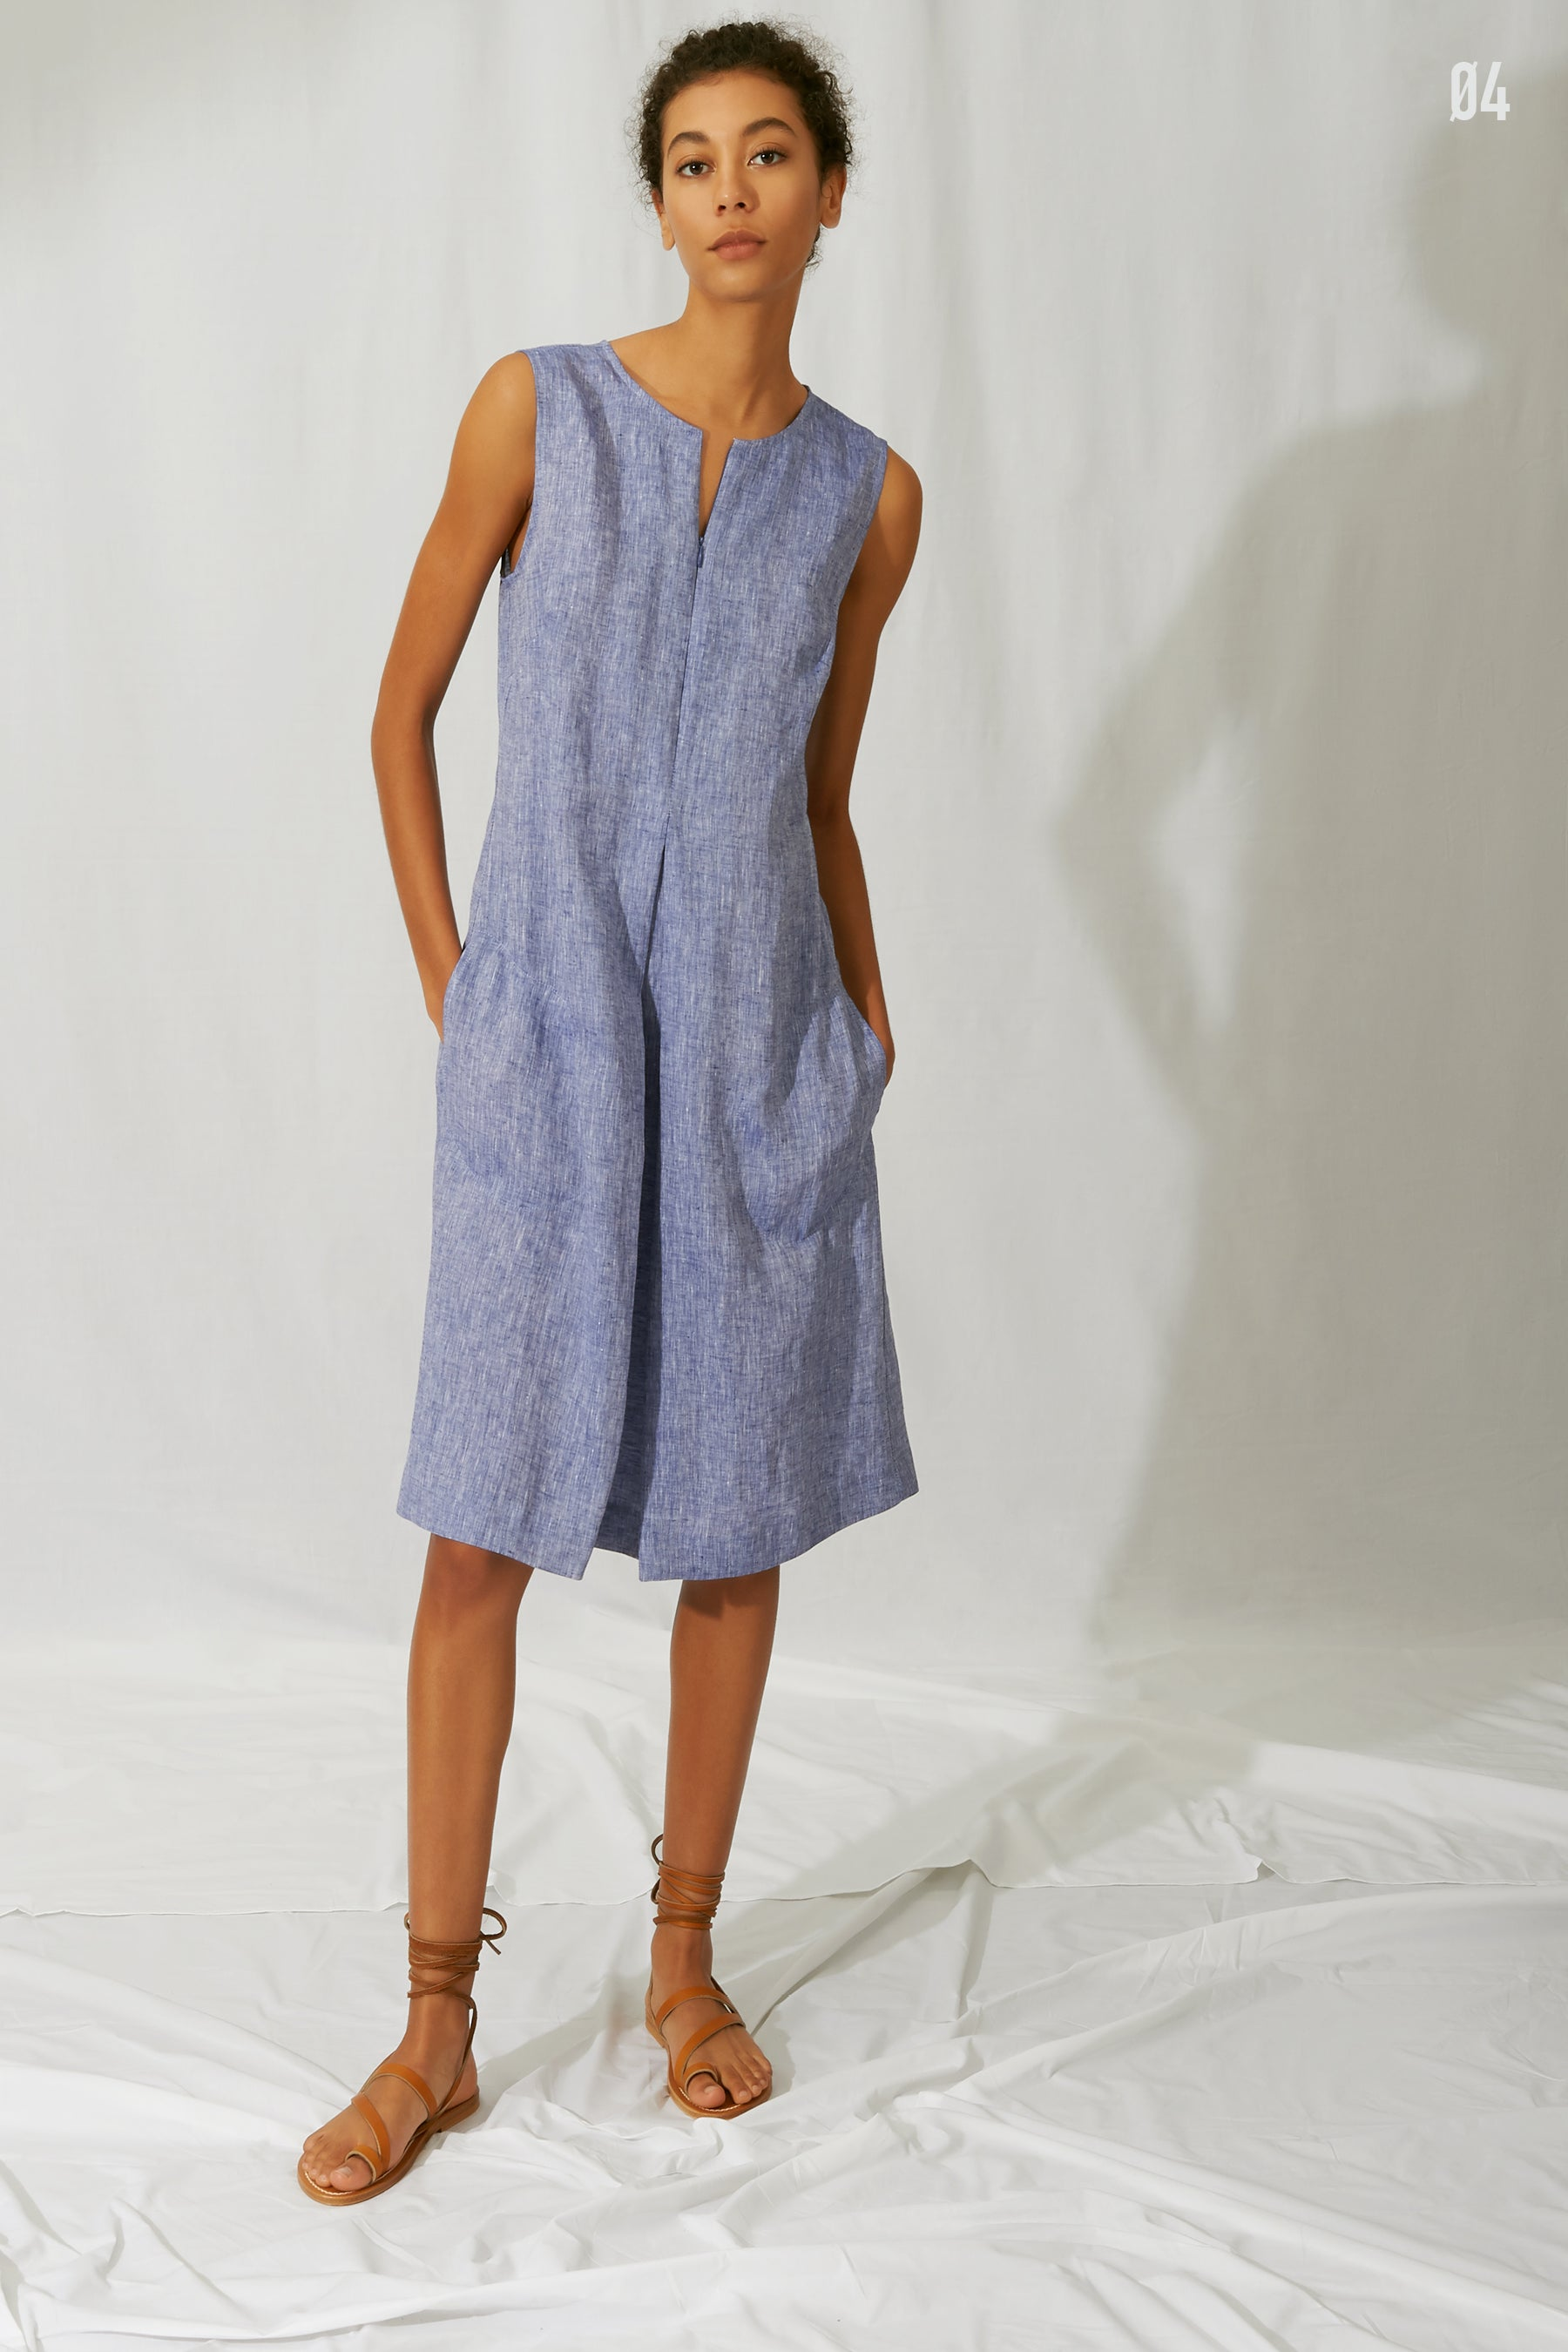 Kal Rieman Spring 2020 Lookbook Look 4